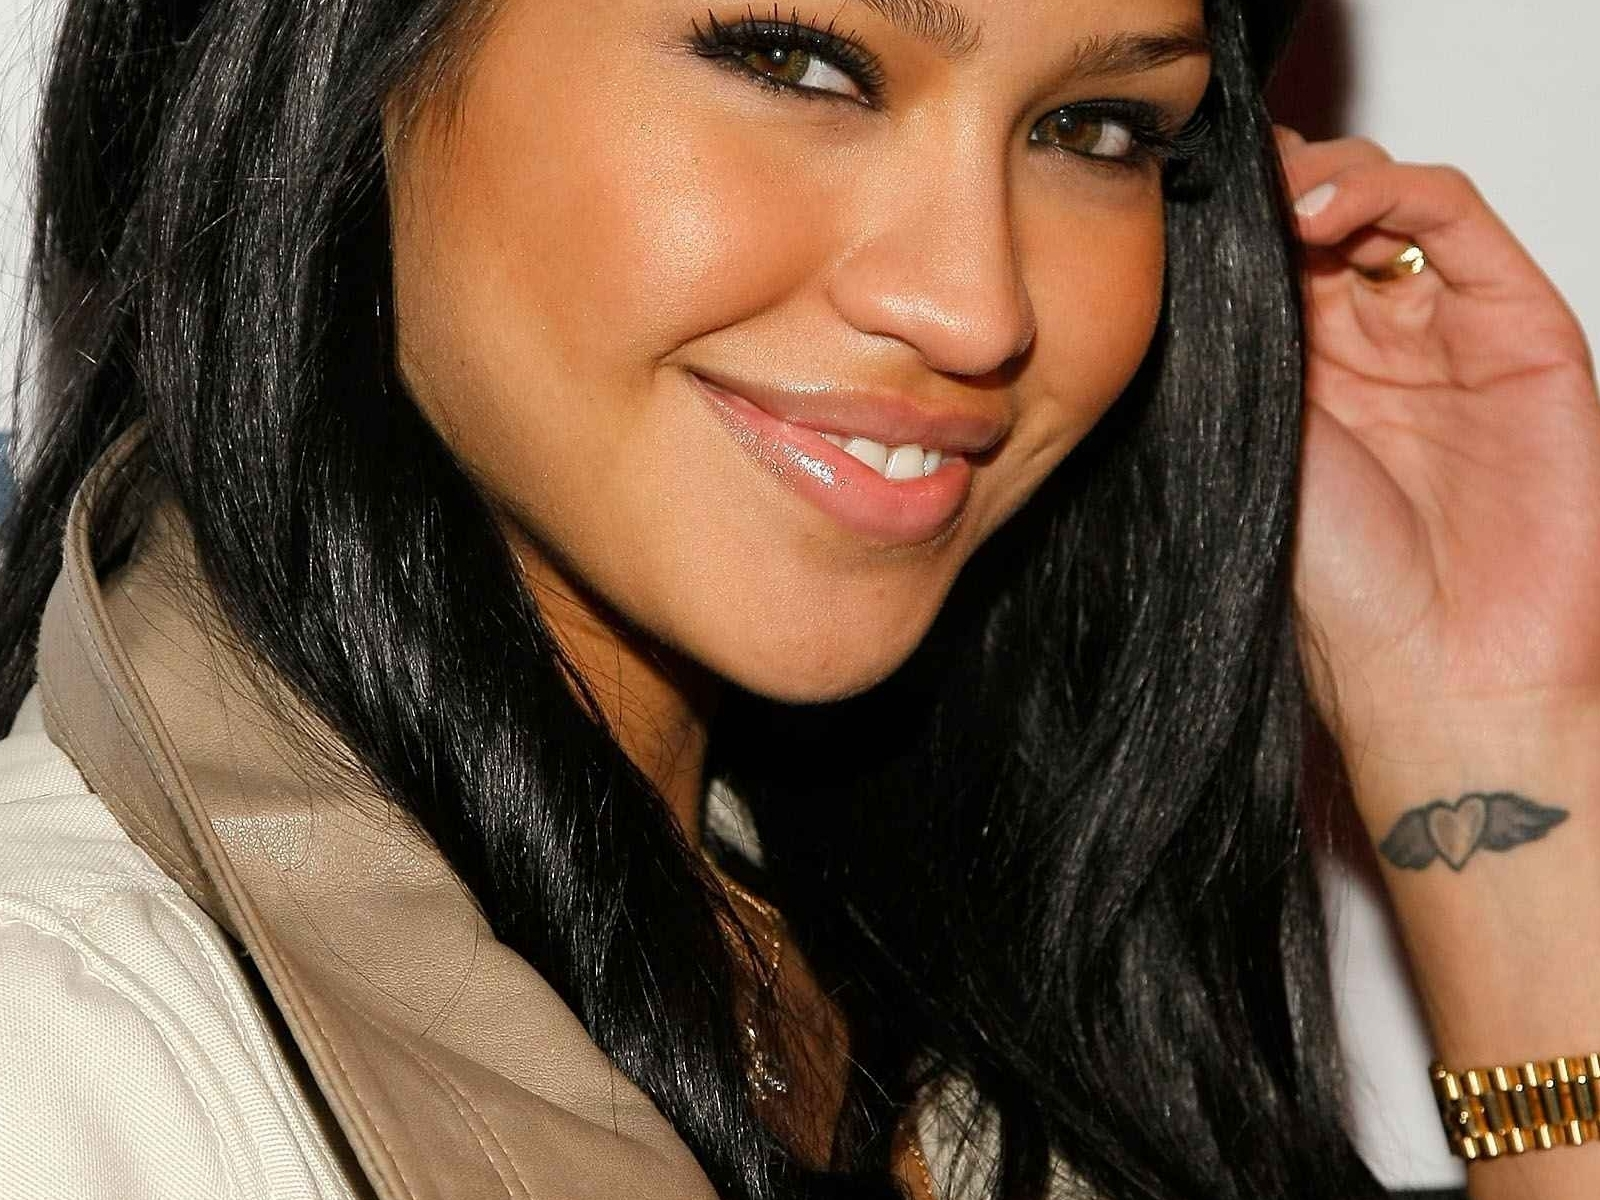 cassie wallpapers photos images - photo #8